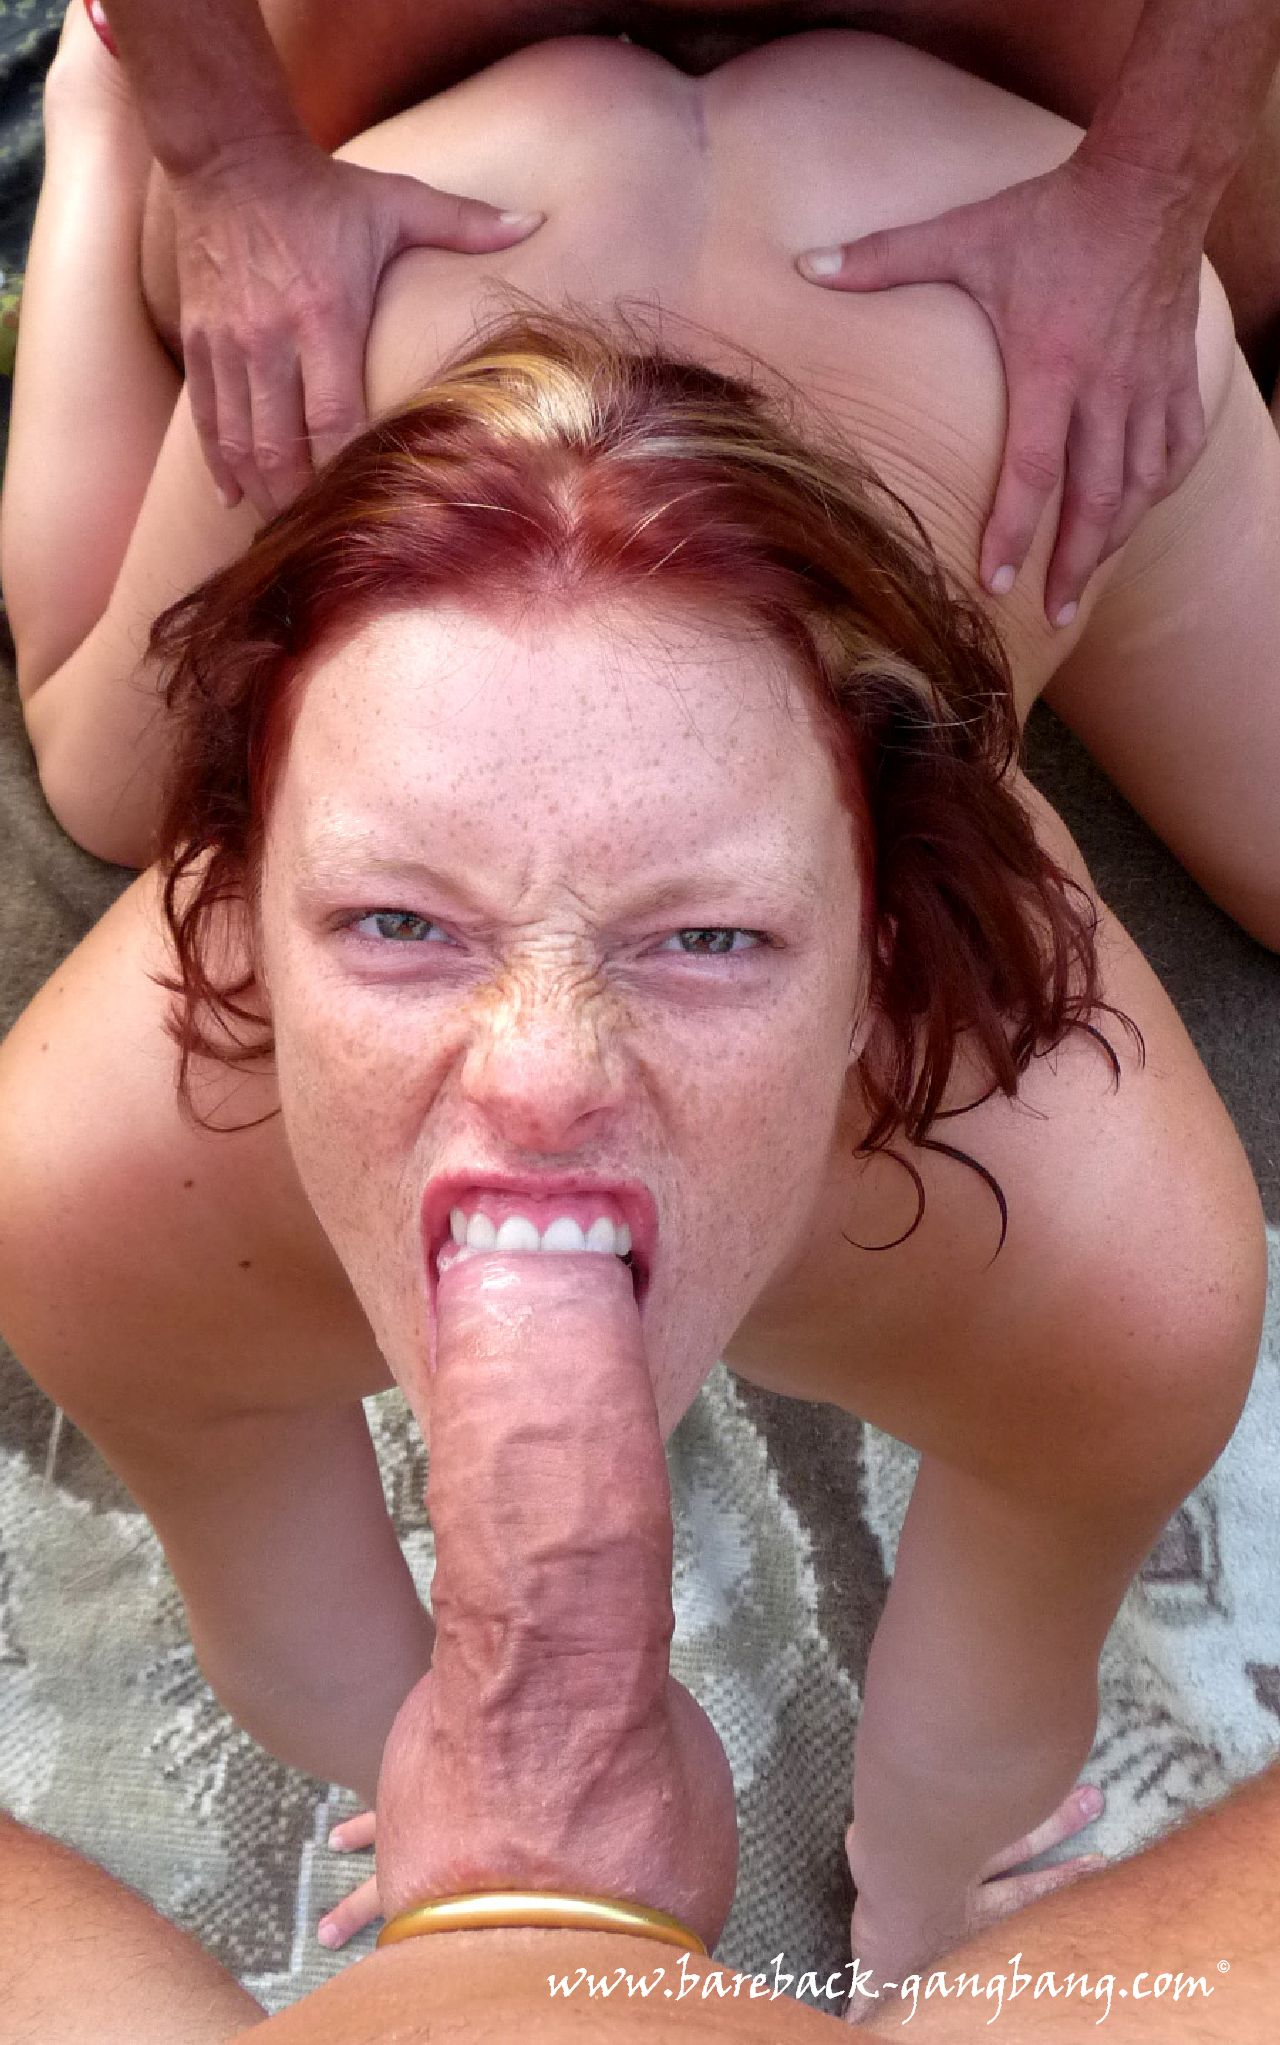 Gut. amature pussy biting this whore